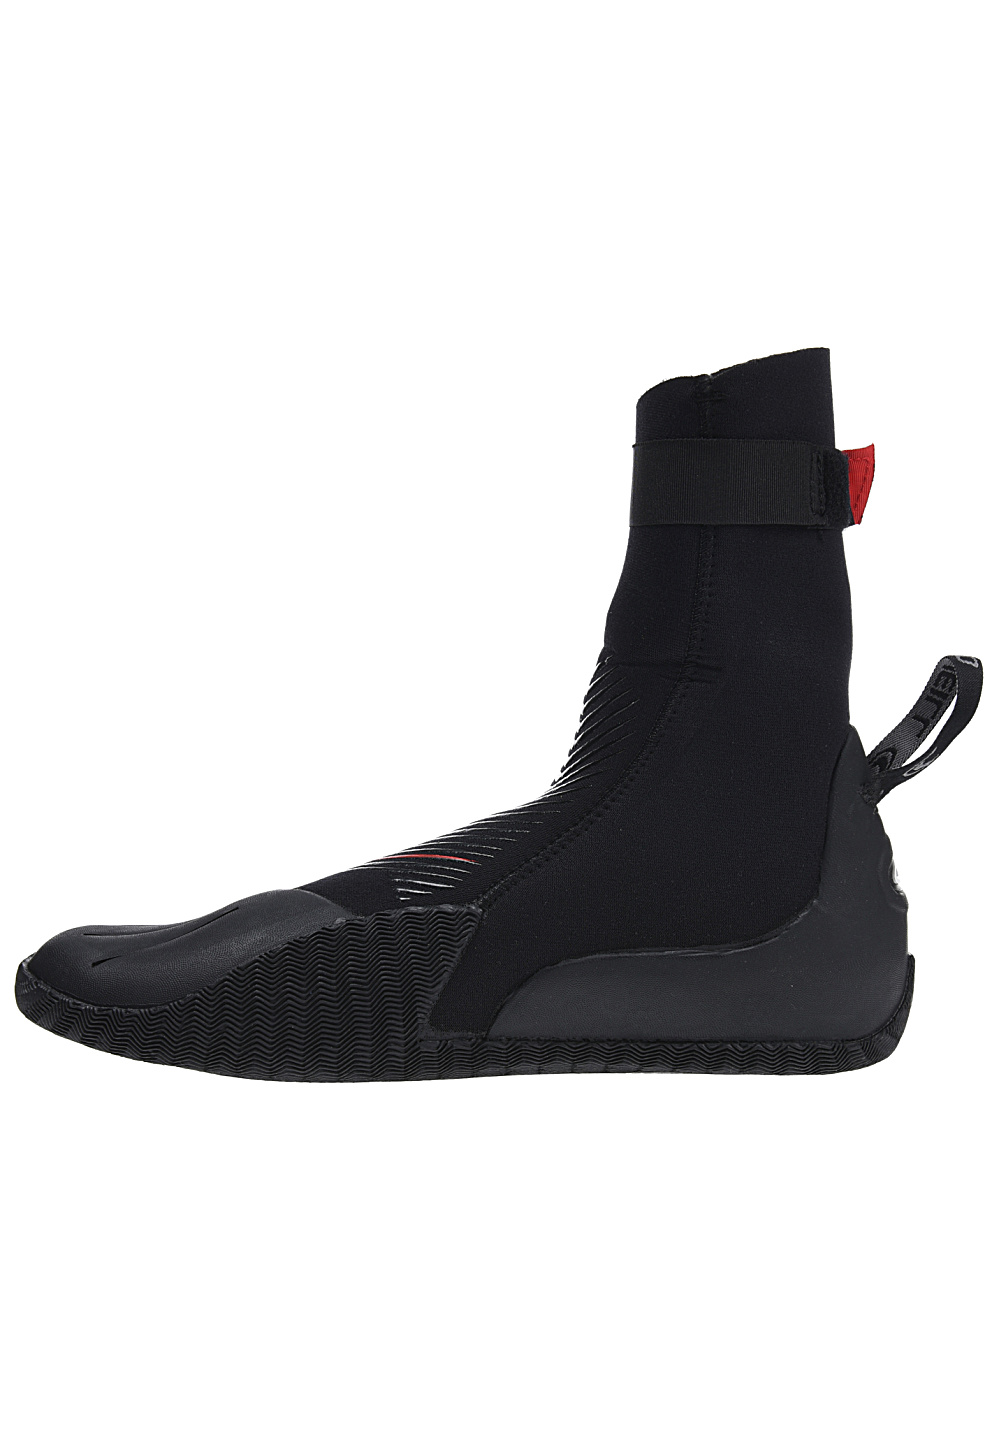 O Neill Heat 3mm RT - Wetsuit Boots - Black - Planet Sports ded3664e38